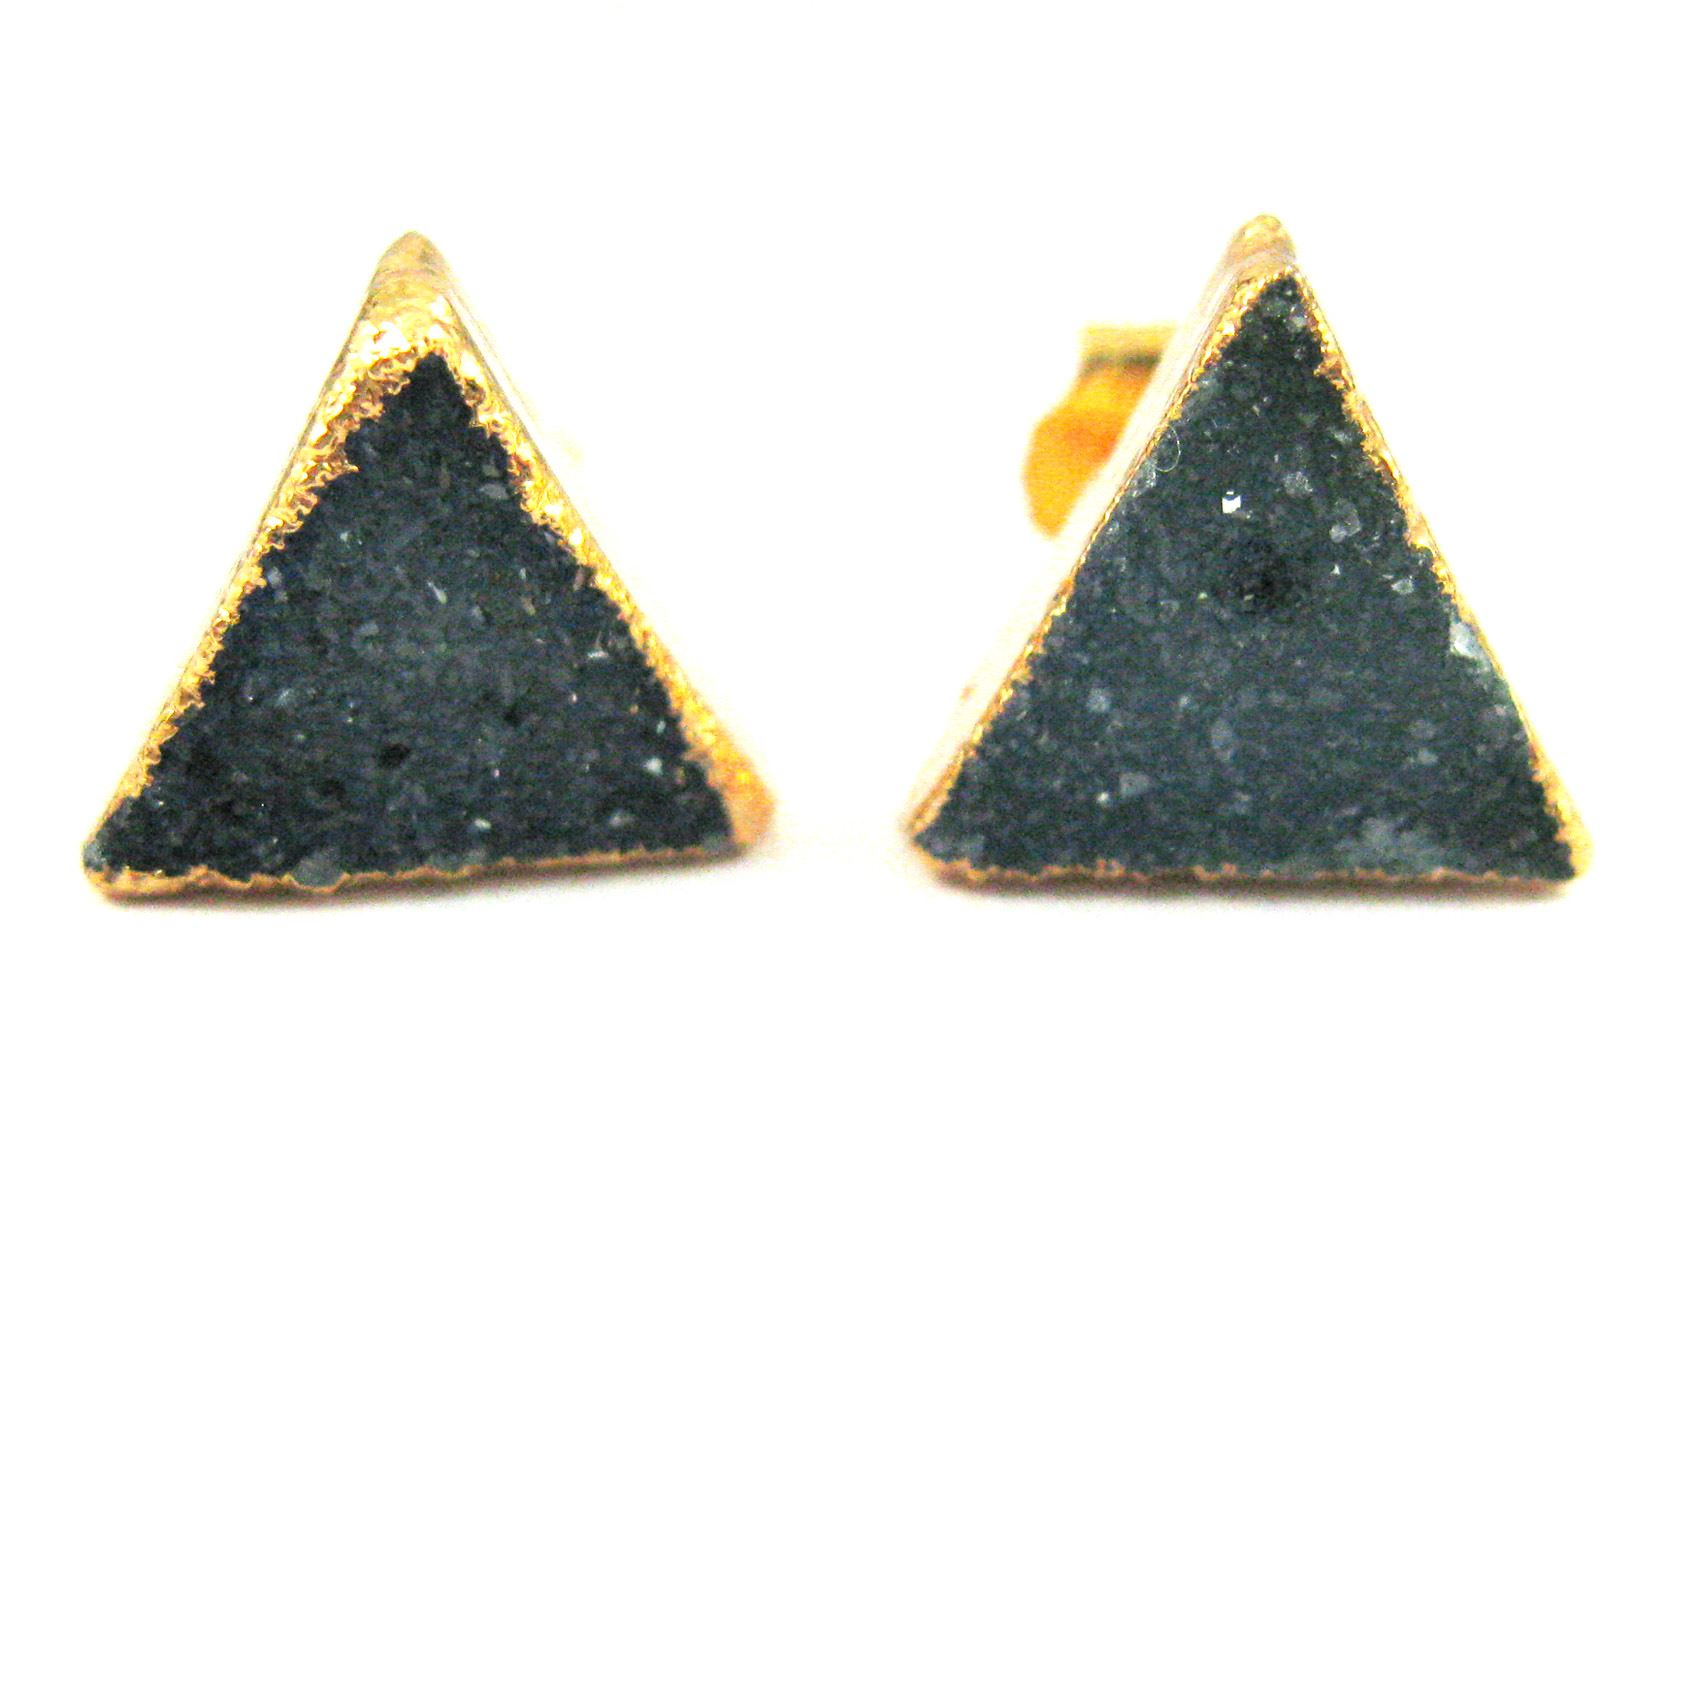 Druzy Earring Studs, Blue Grey Druzy Agate,Gemstone Stud Earrings - Gold plated Sterling Silver- Triangle 10mm - 1 Pair